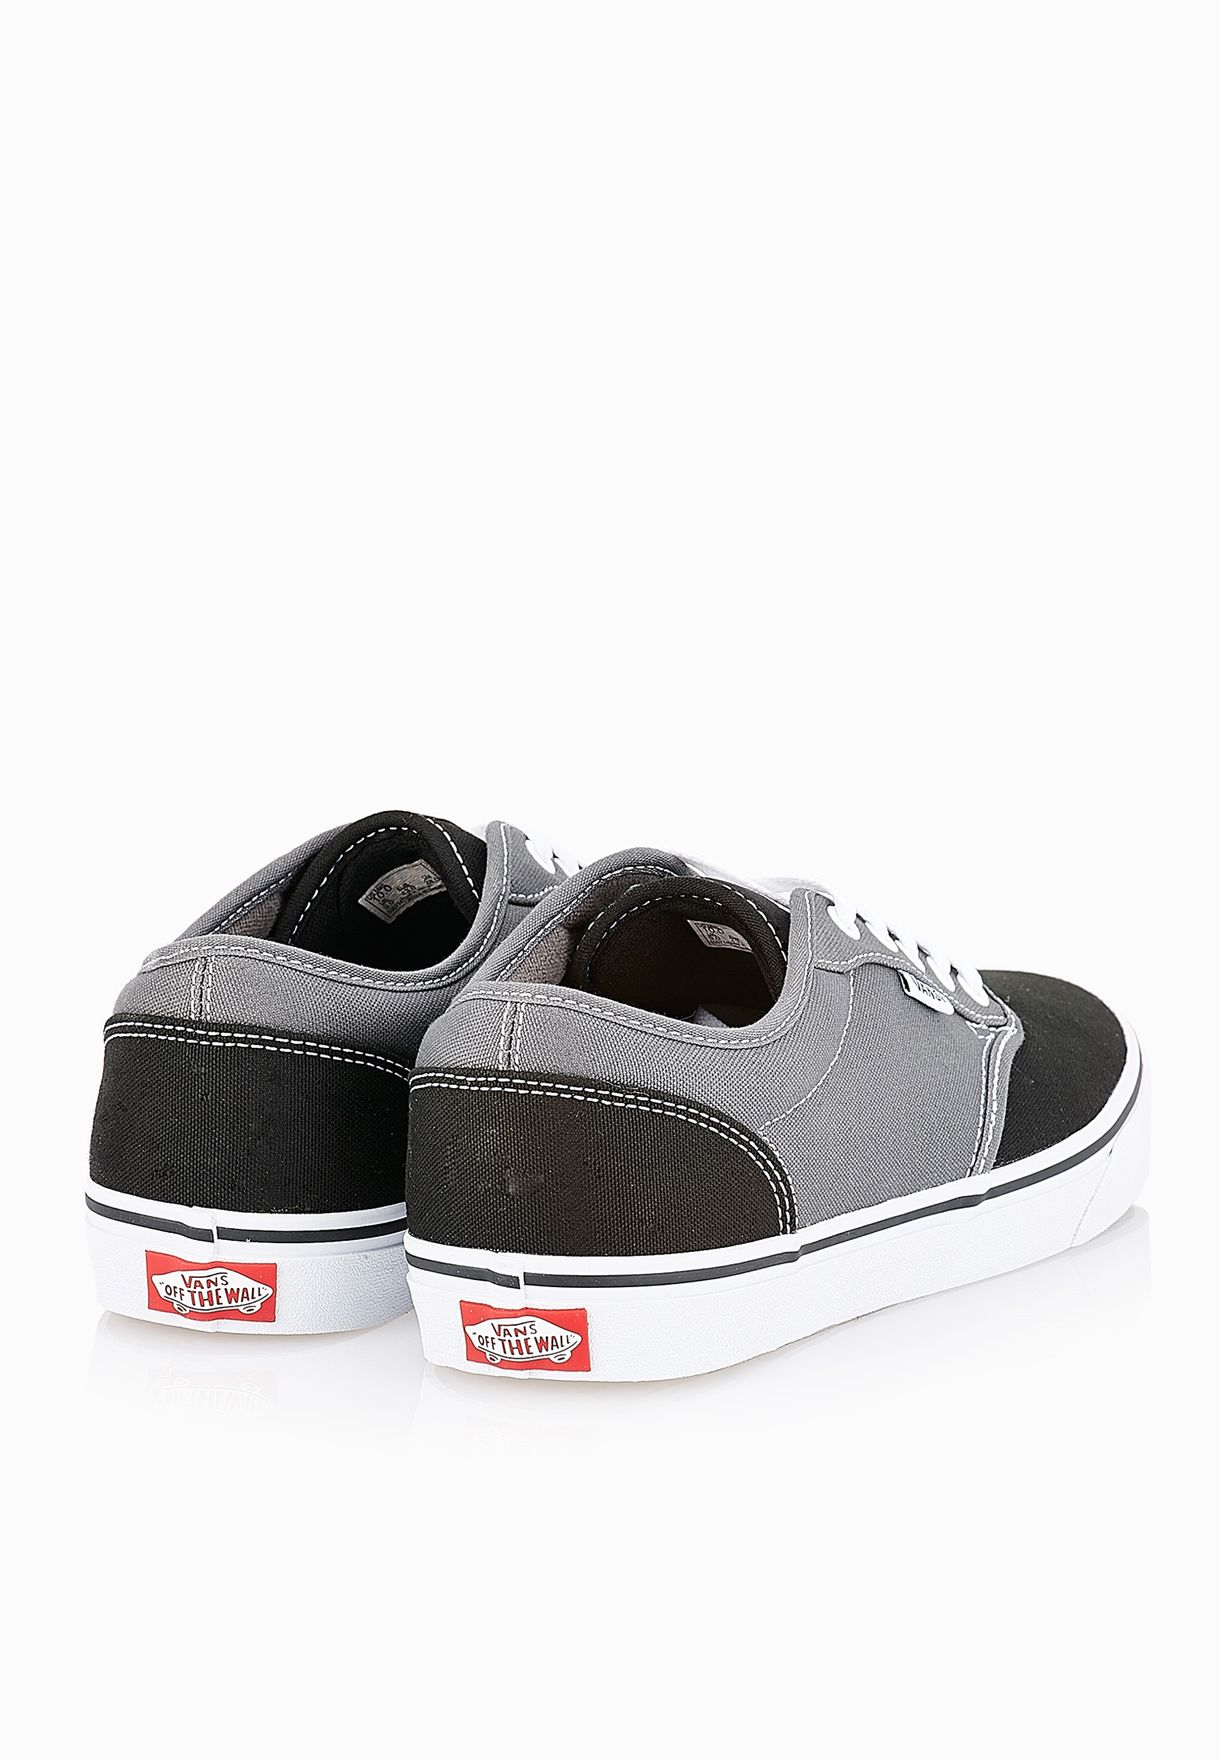 a9a3d8f9686c Shop Vans grey Atwood 2 Tone Sneakers VAFT-15G5EV for Men in UAE ...